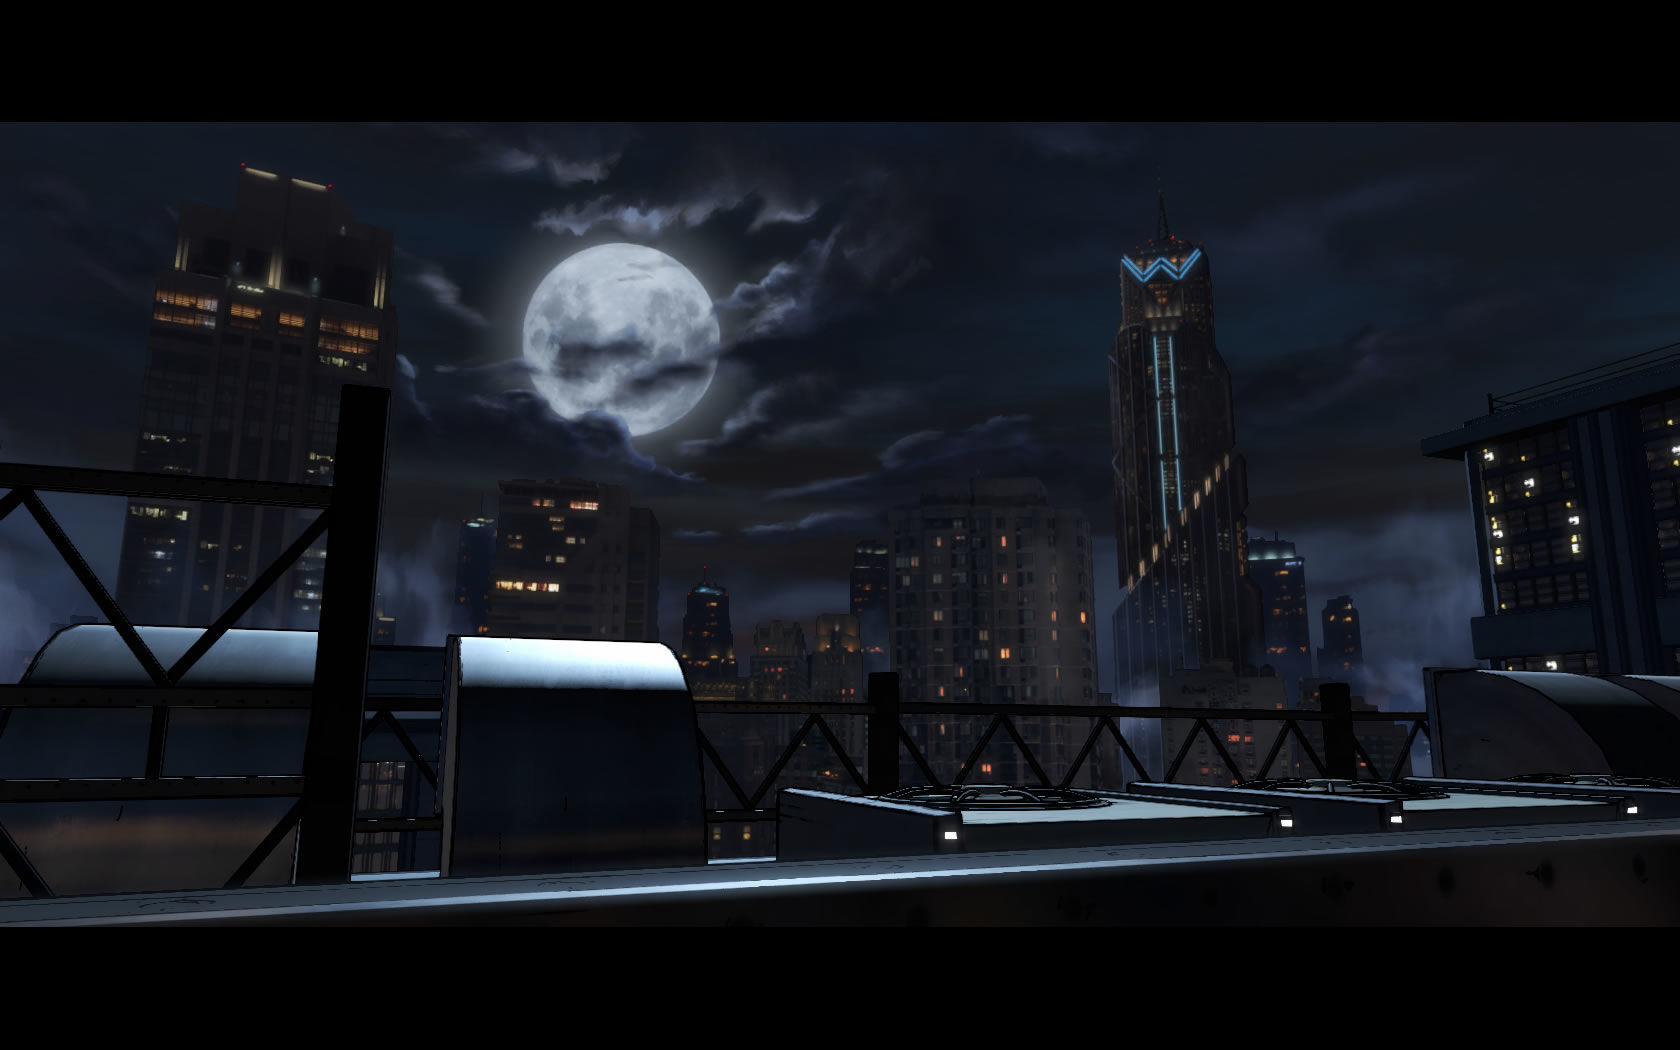 Batman: The Telltale Series - Episode 1: Realm of Shadows Windows The Wayne Enterprises building in the background